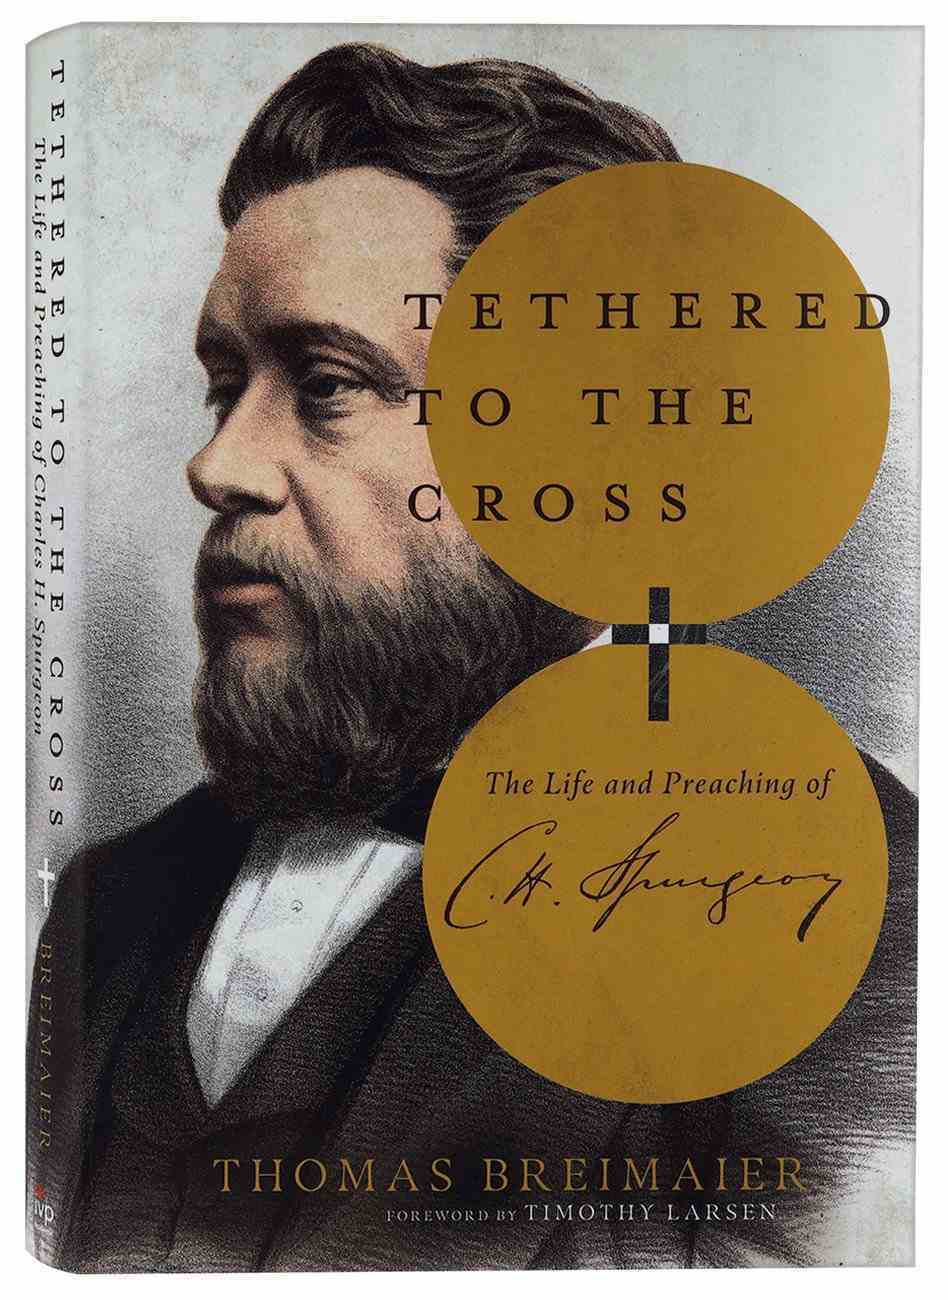 Tethered to the Cross: The Life and Preaching of Charles H. Spurgeon Hardback